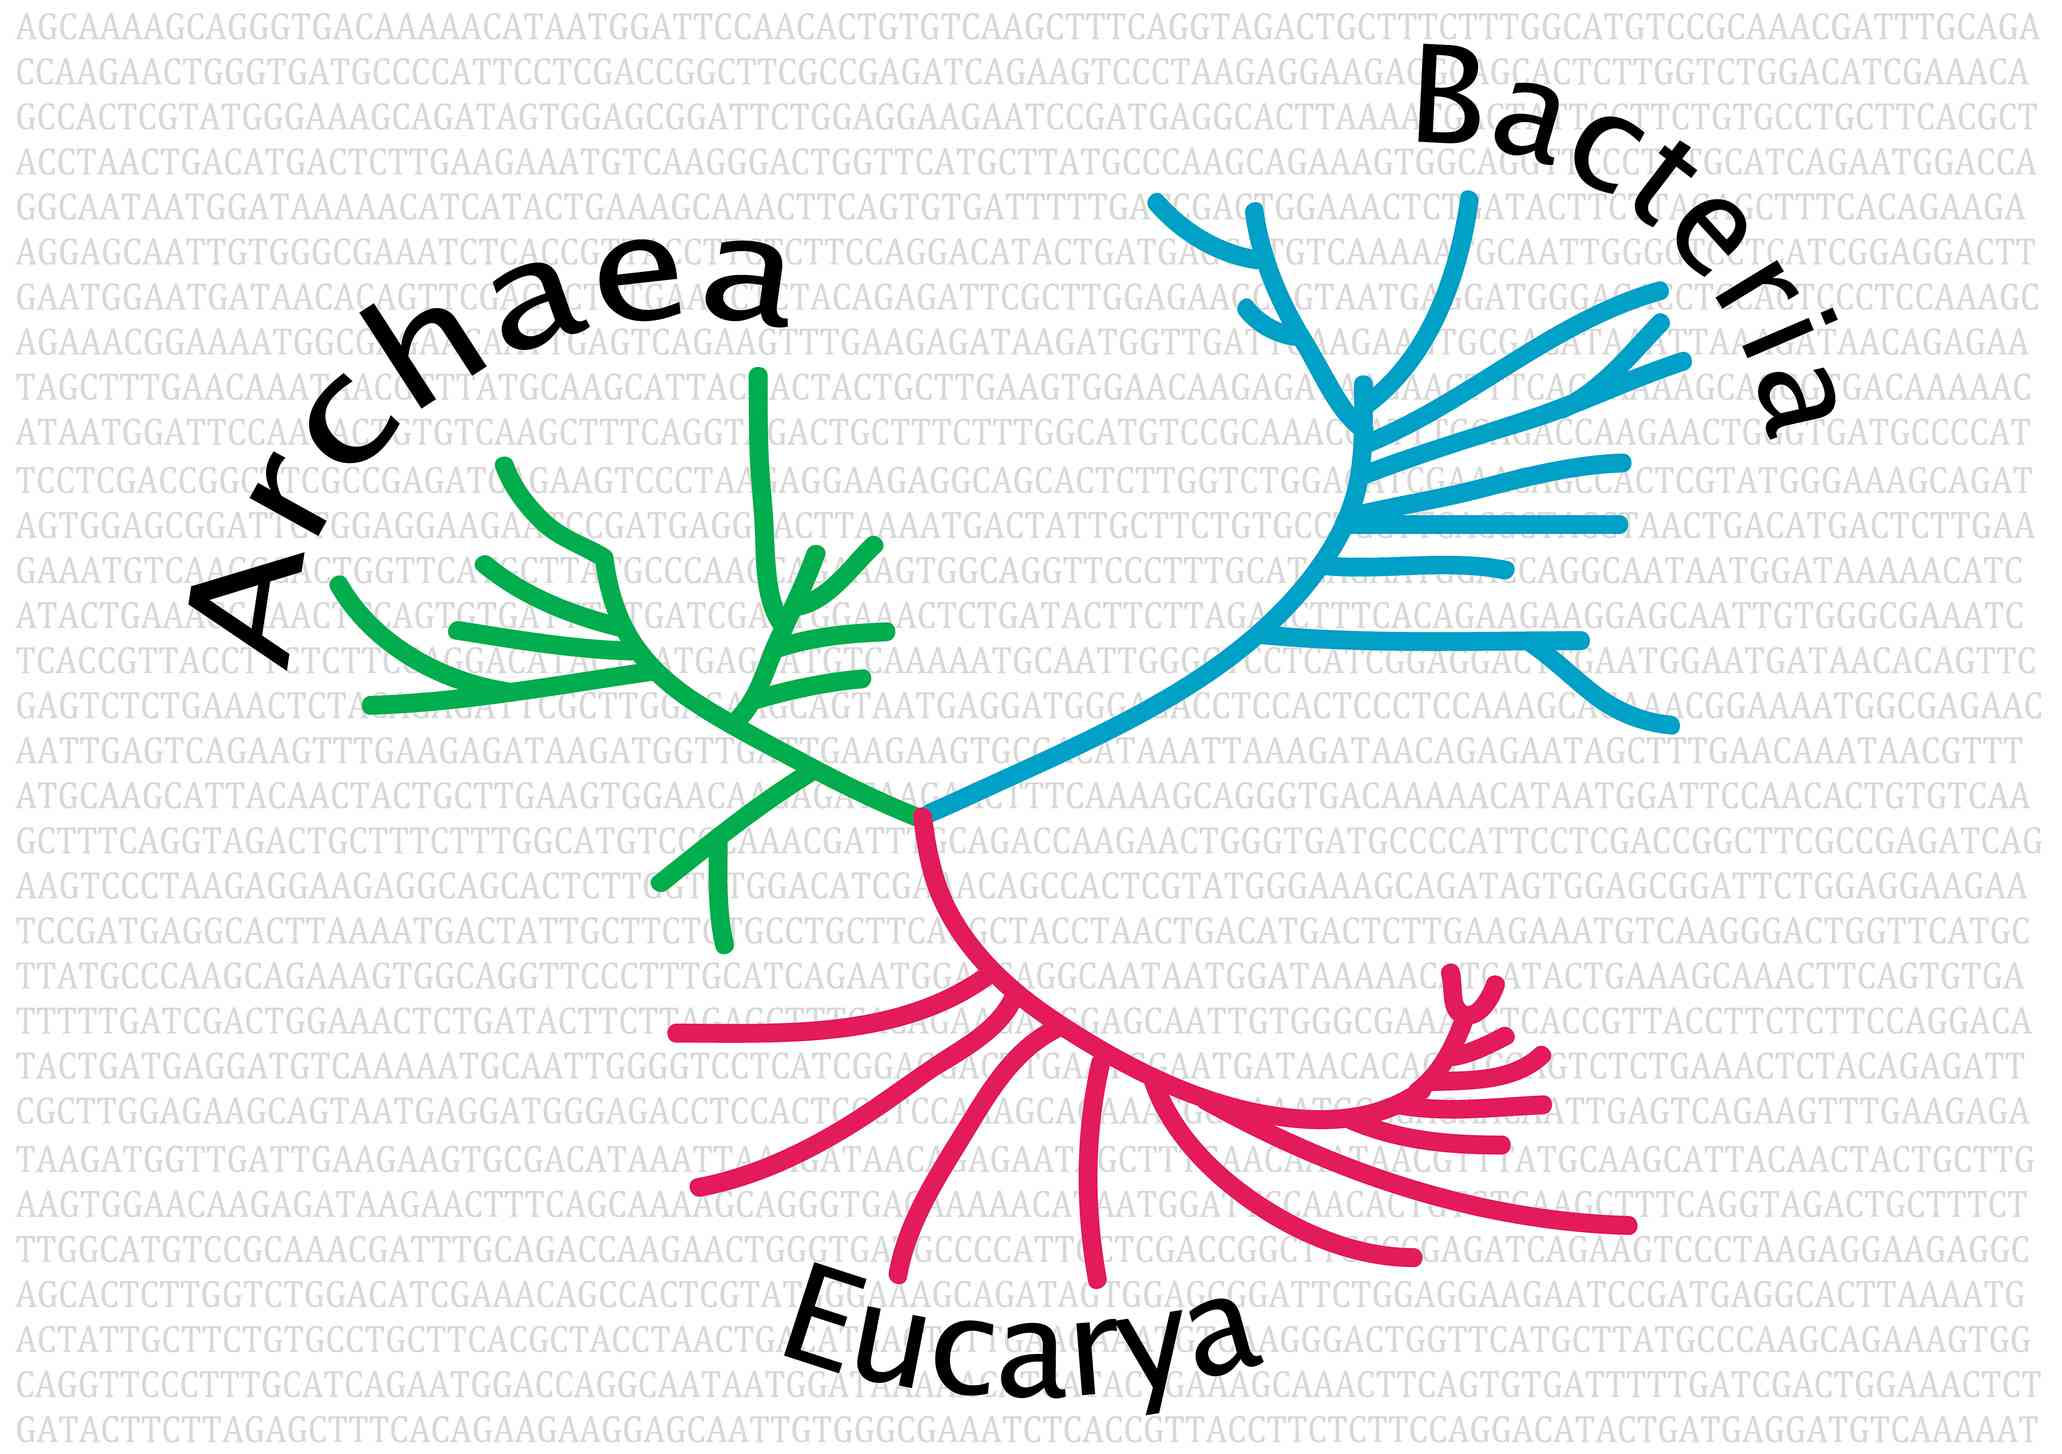 Unrooted phylogenetic tree of life.